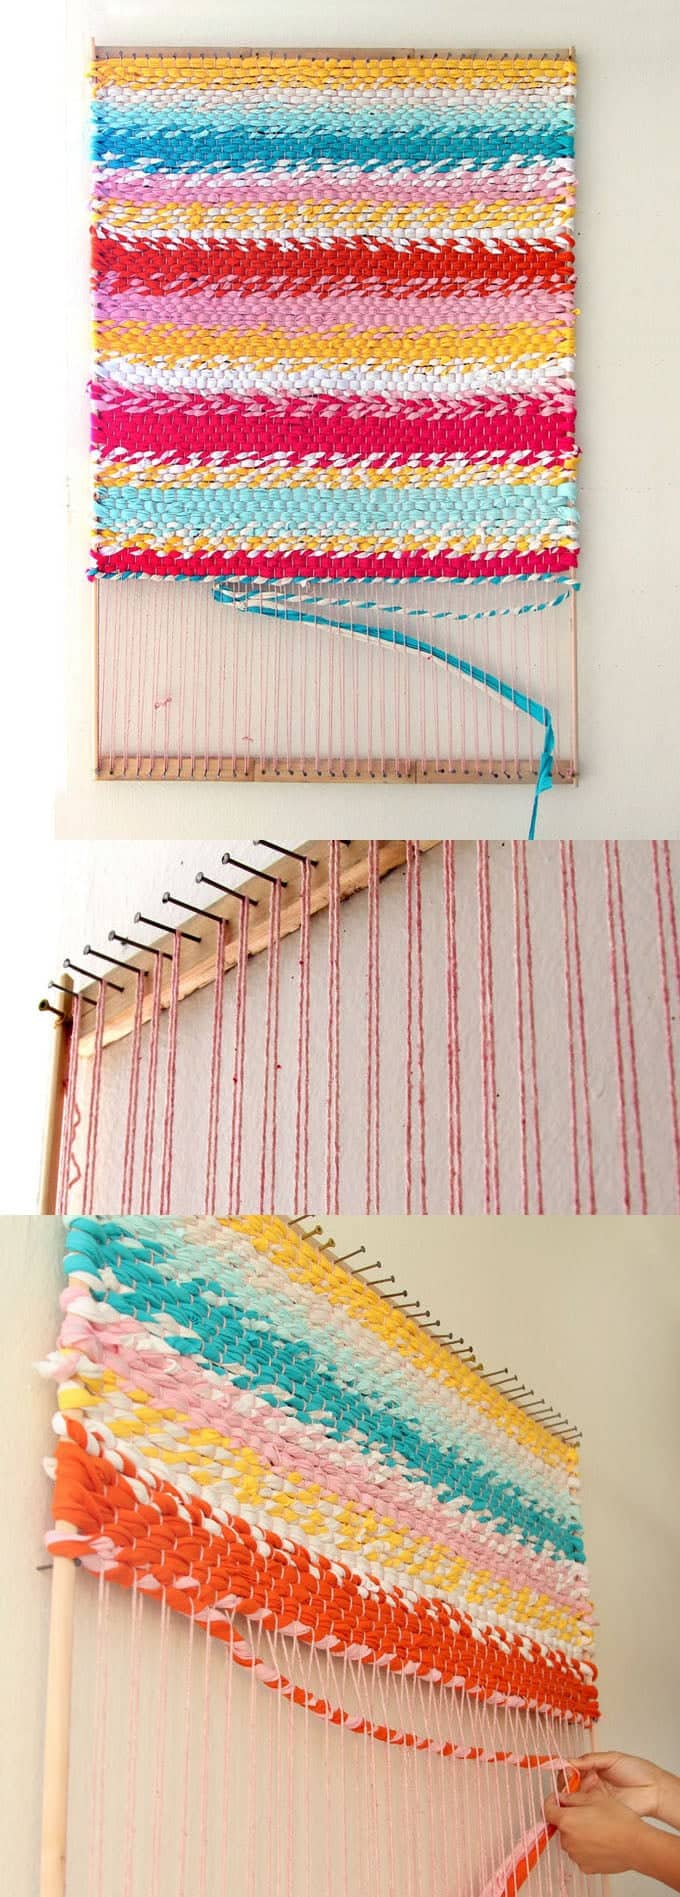 16 Colorful Diy Woven Pieces For Home Decor Shelterness